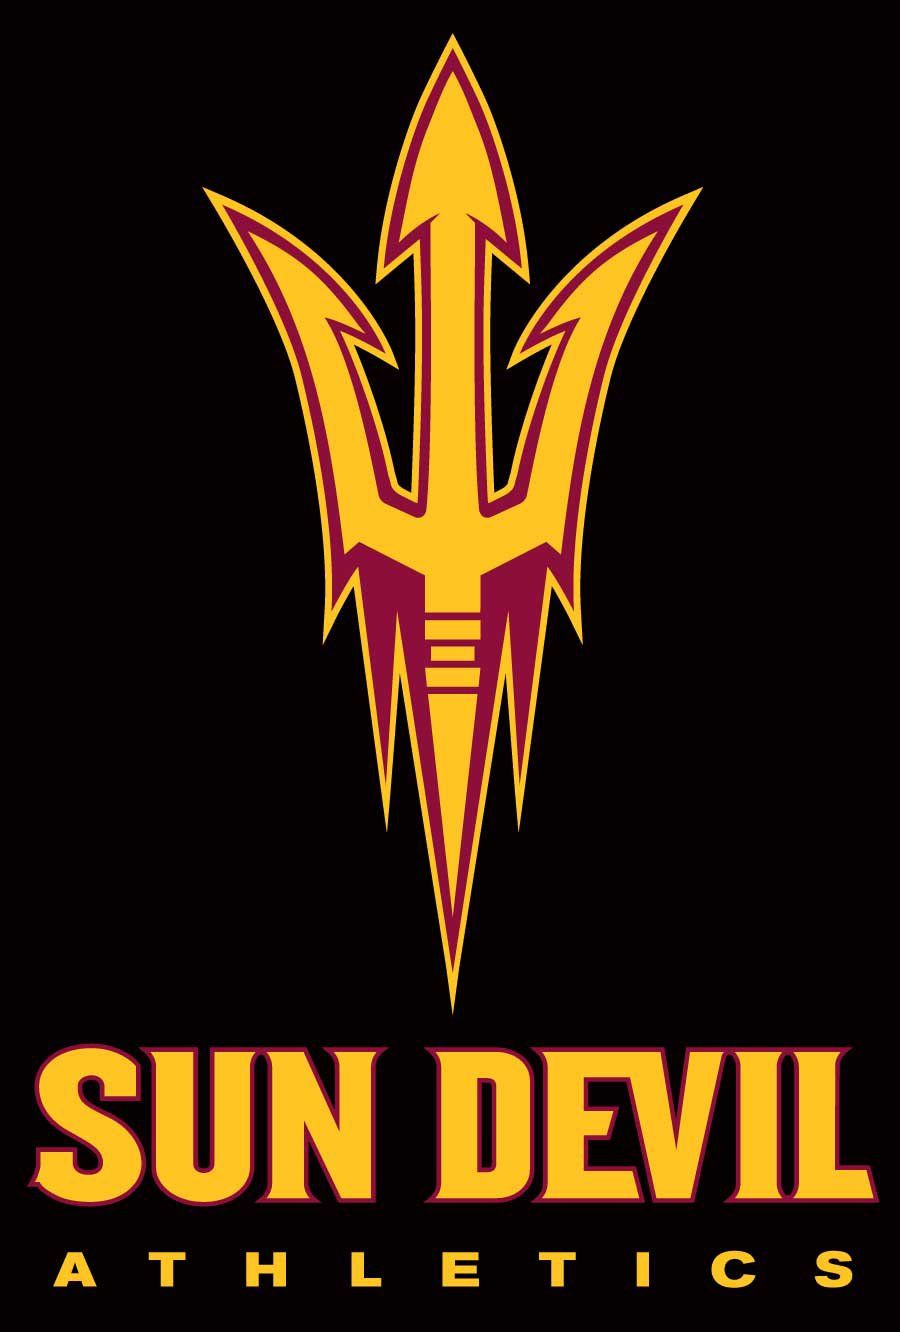 ASU Logo - asu logo - Google Search | College Baseball | Arizona state ...